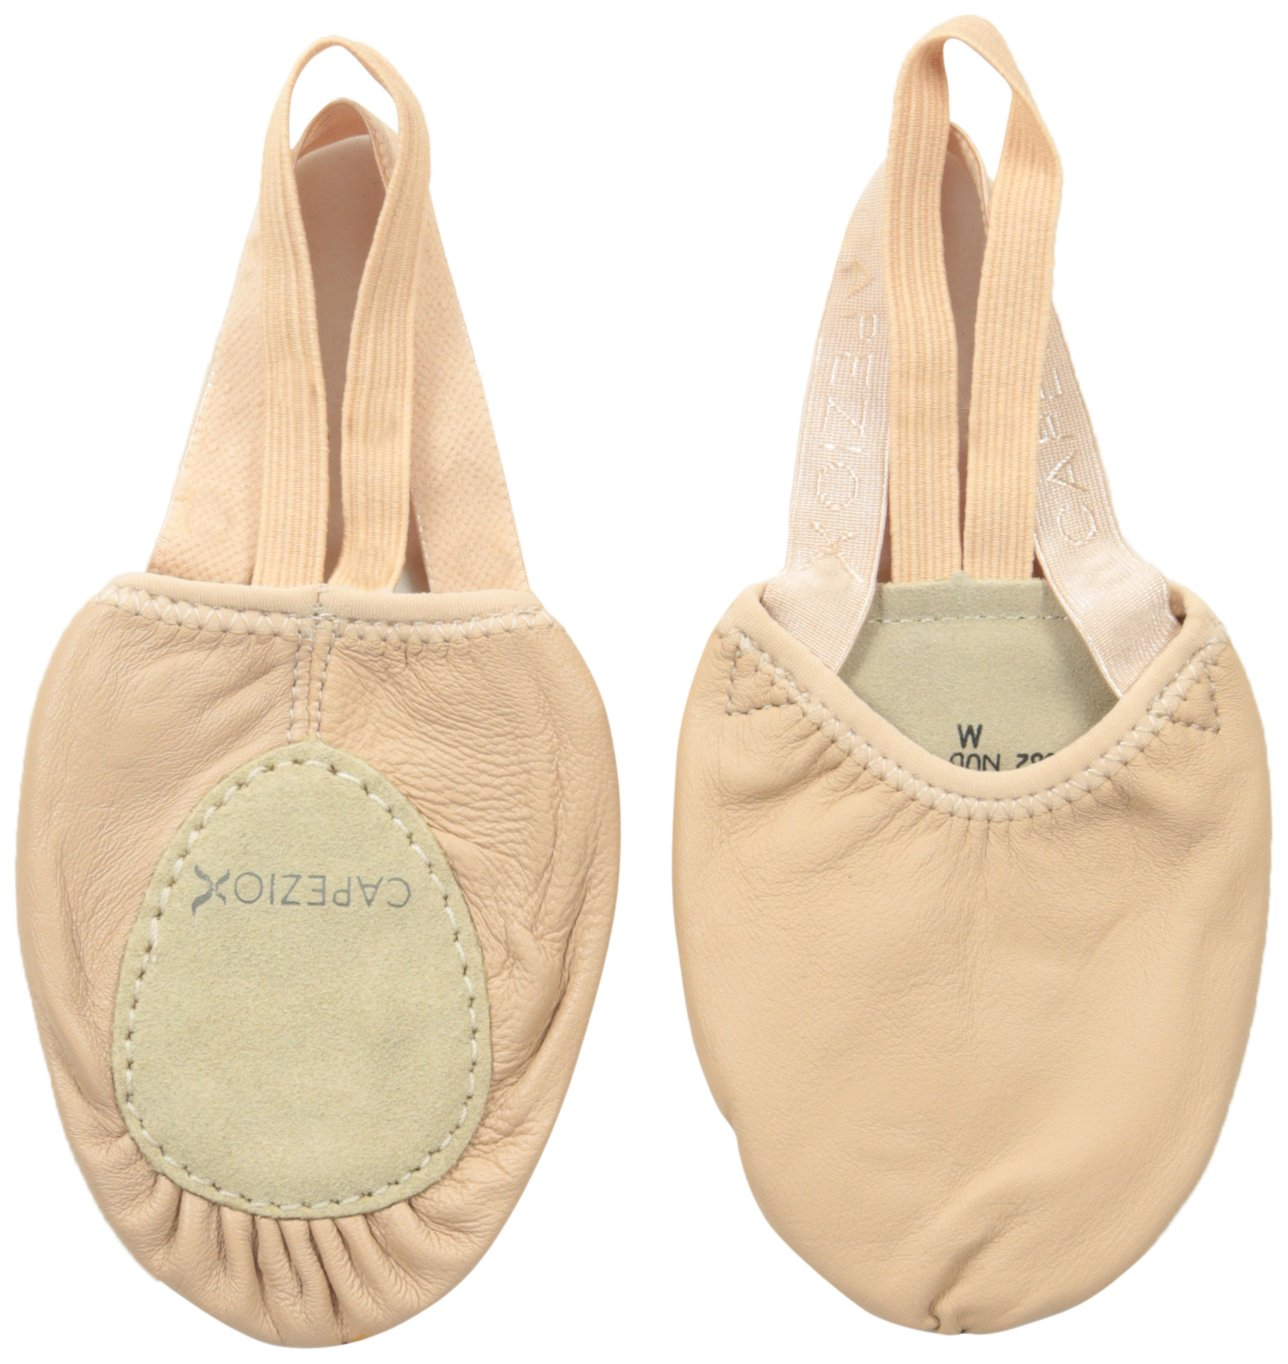 Capezio Leather Pirouette II Dance Shoe, Nude, Medium/8-9.5 M US